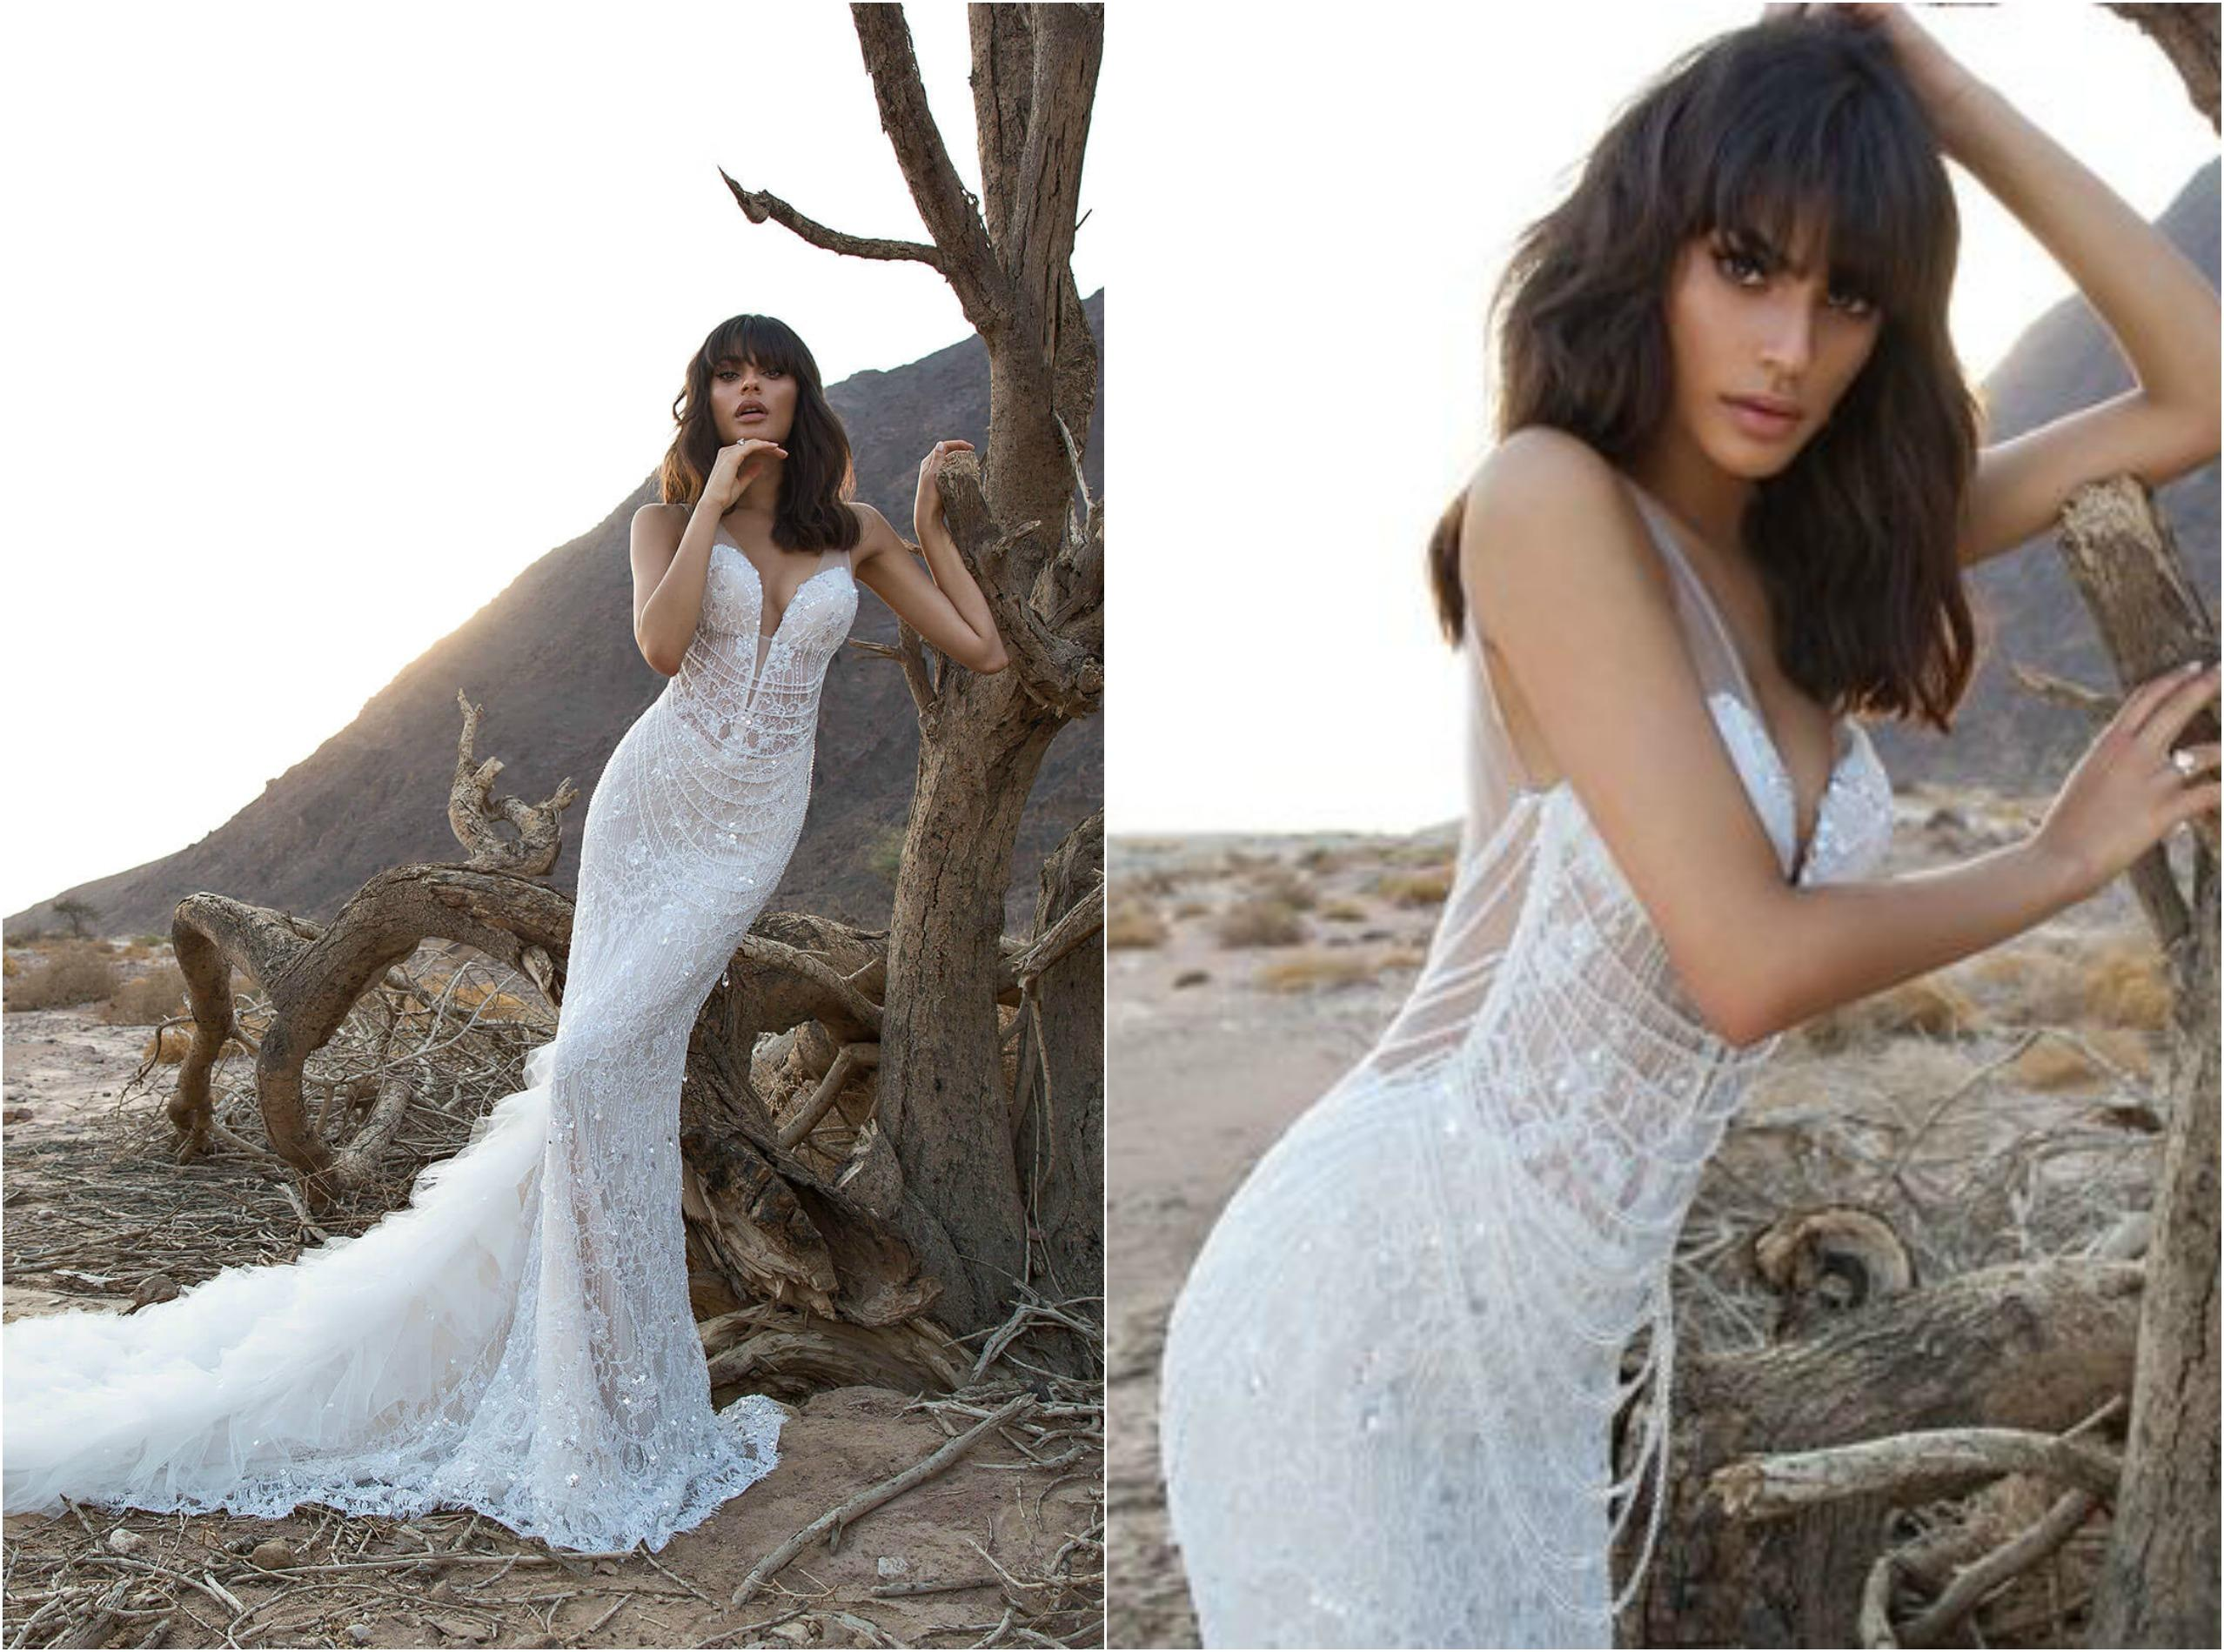 Pnina Tornai's 10 Most Blinged Out Gowns TLCme